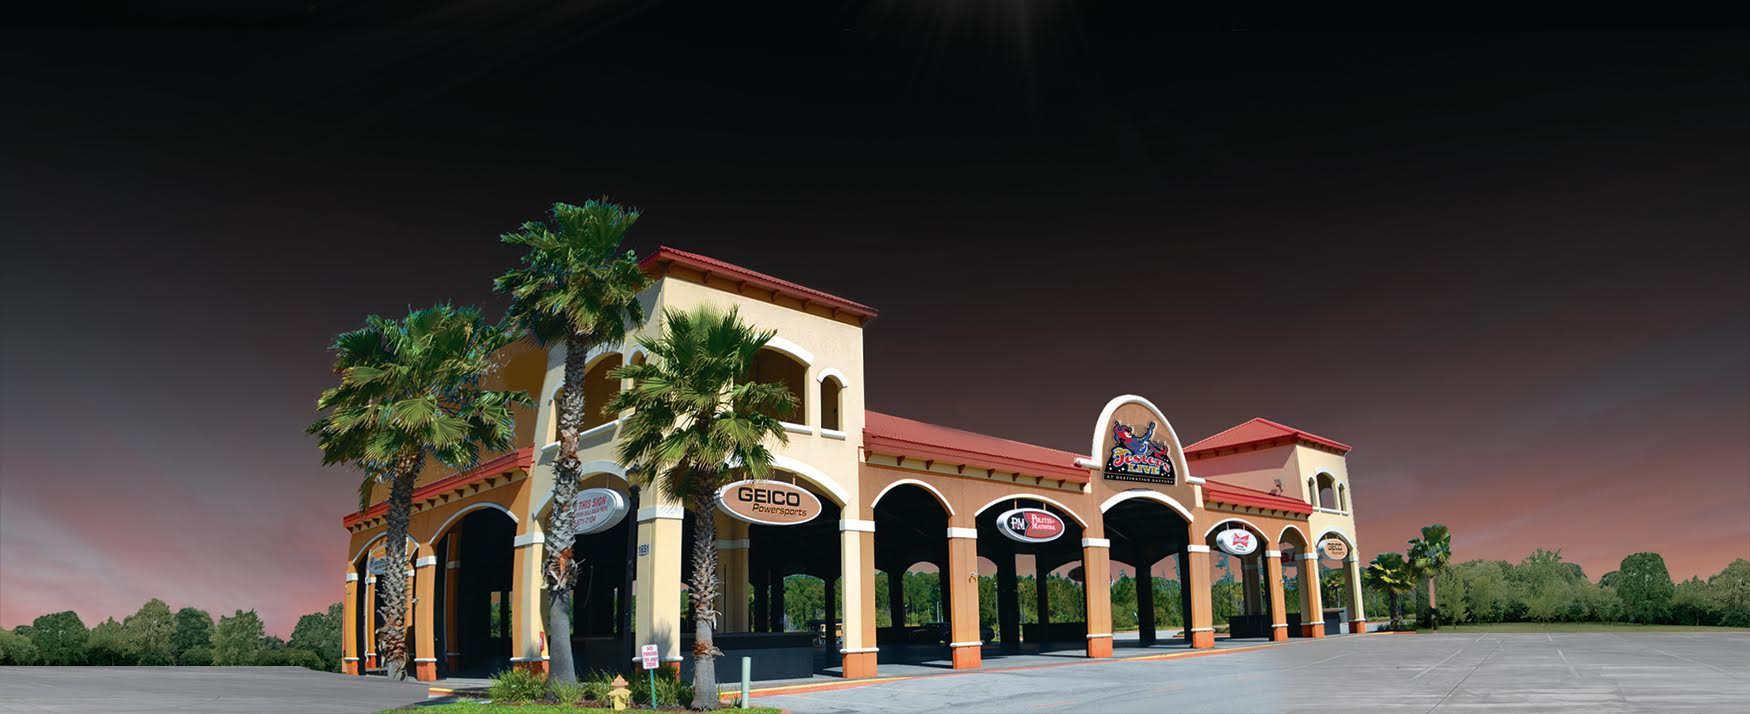 BRUCE ROSSMEYER'S DESTINATION DAYTONA ANNOUNCES THE OPENING OF JESTERS LIVE